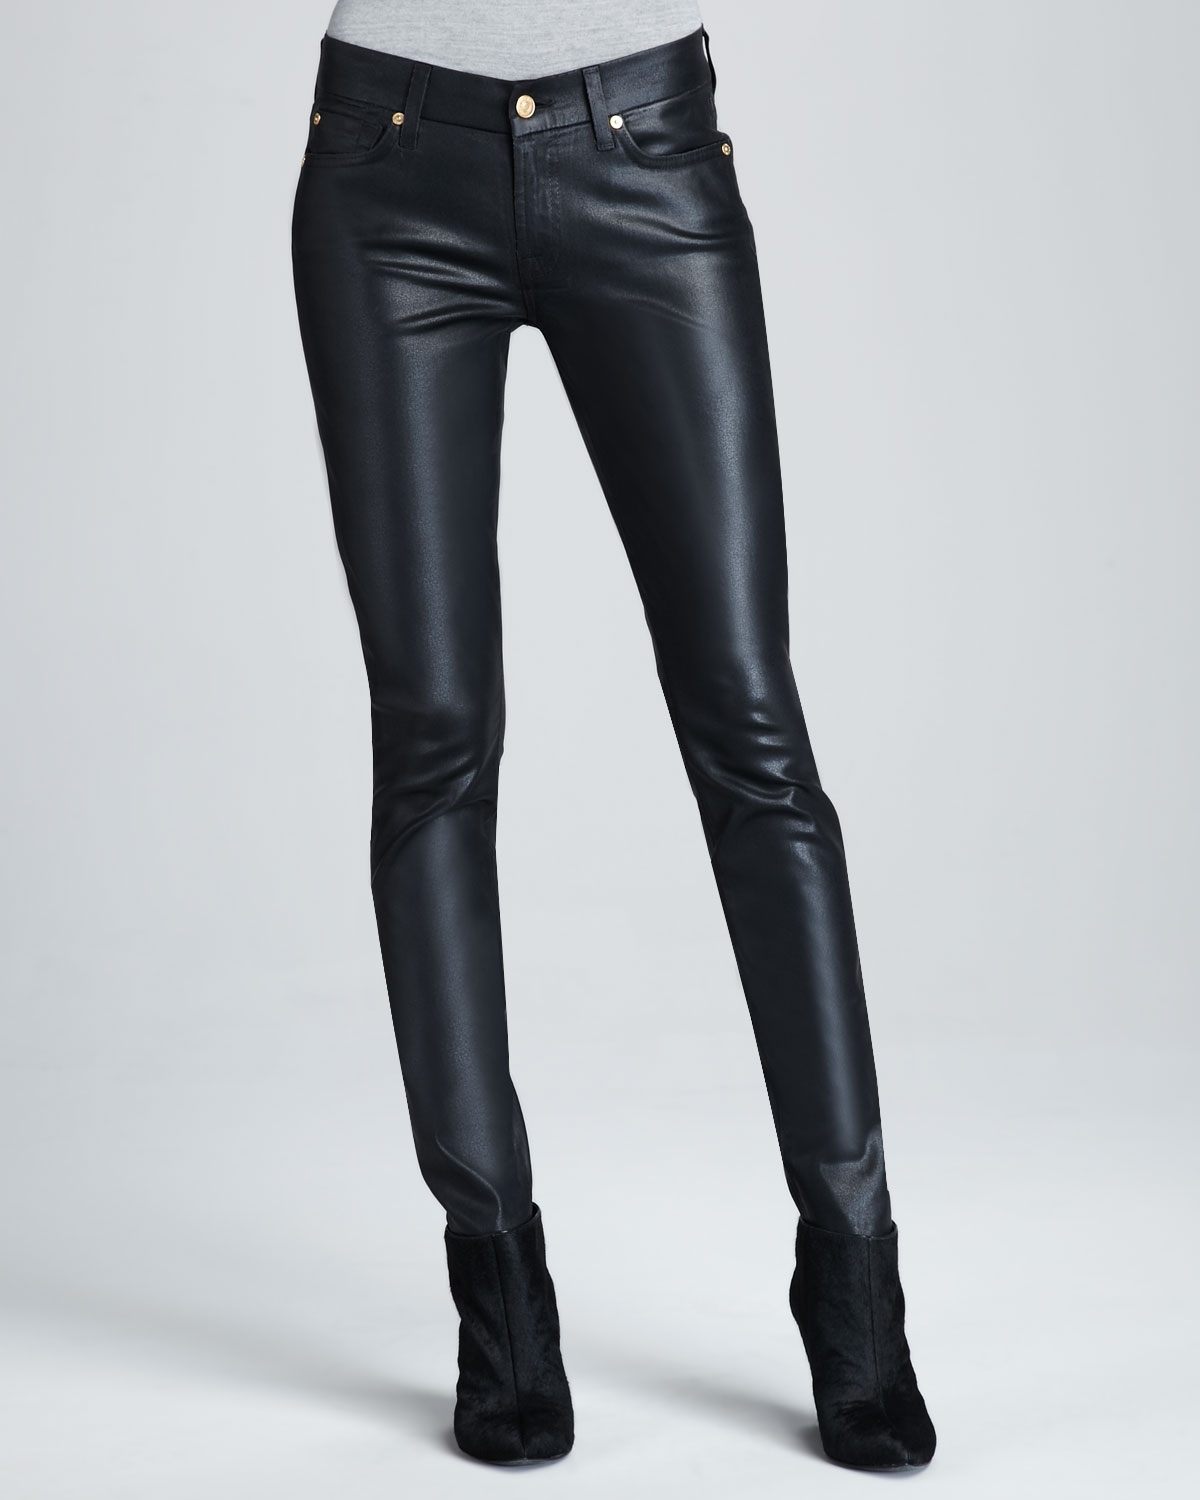 7 for all mankind skinny black high shine gummy jeans in black lyst